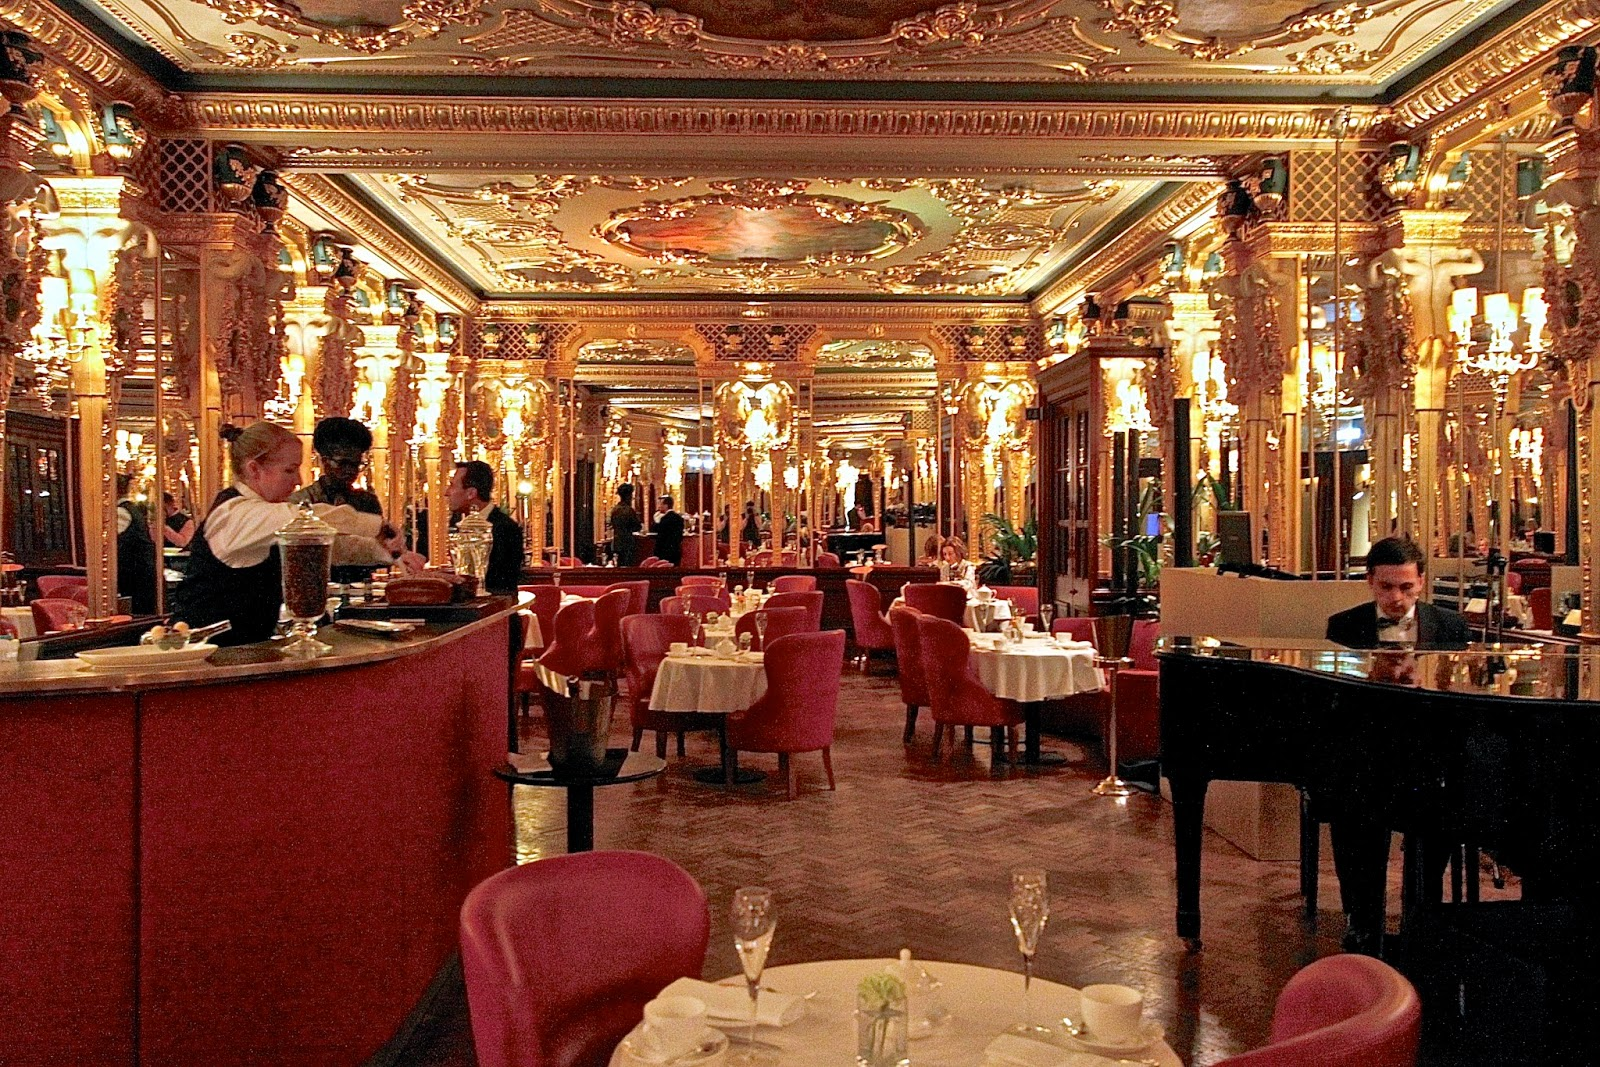 London Cafe Royal Afternoon Tea